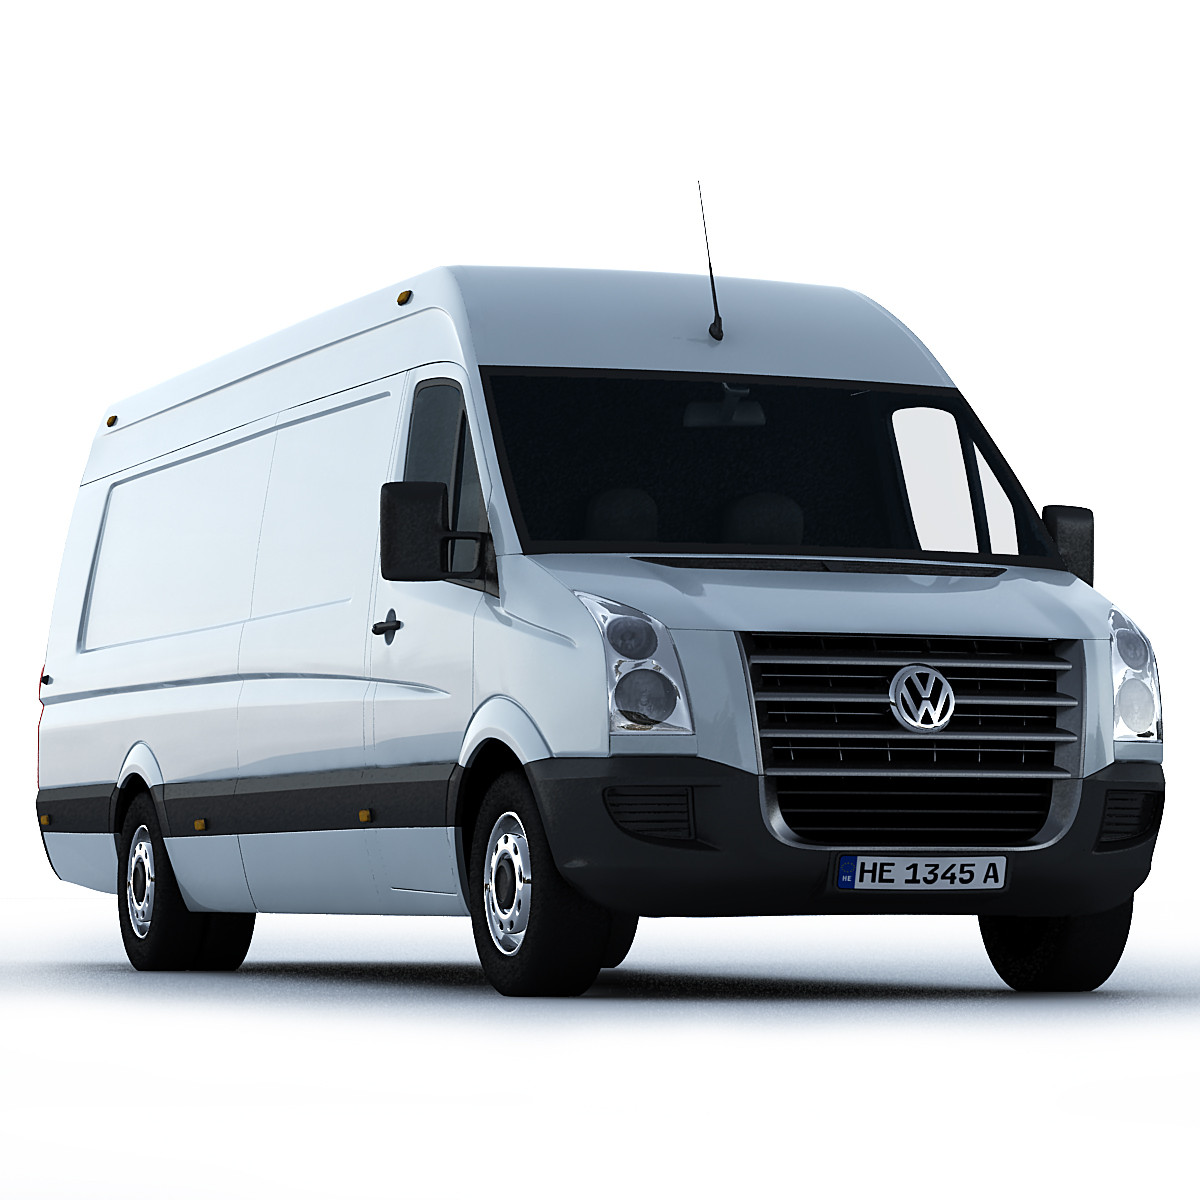 VWCrafter_View01.jpg